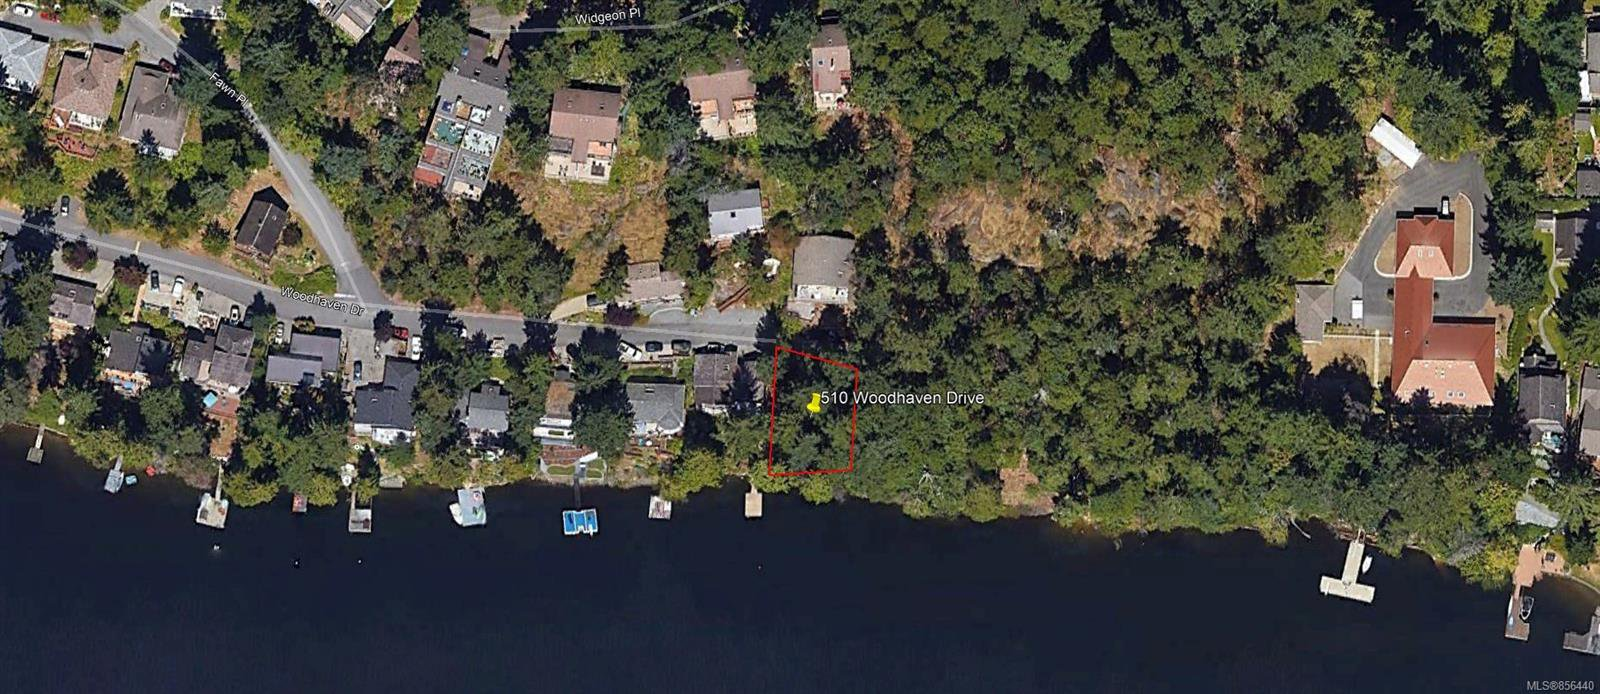 Main Photo: 510 Woodhaven Dr in : Na Uplands Land for sale (Nanaimo)  : MLS®# 856440